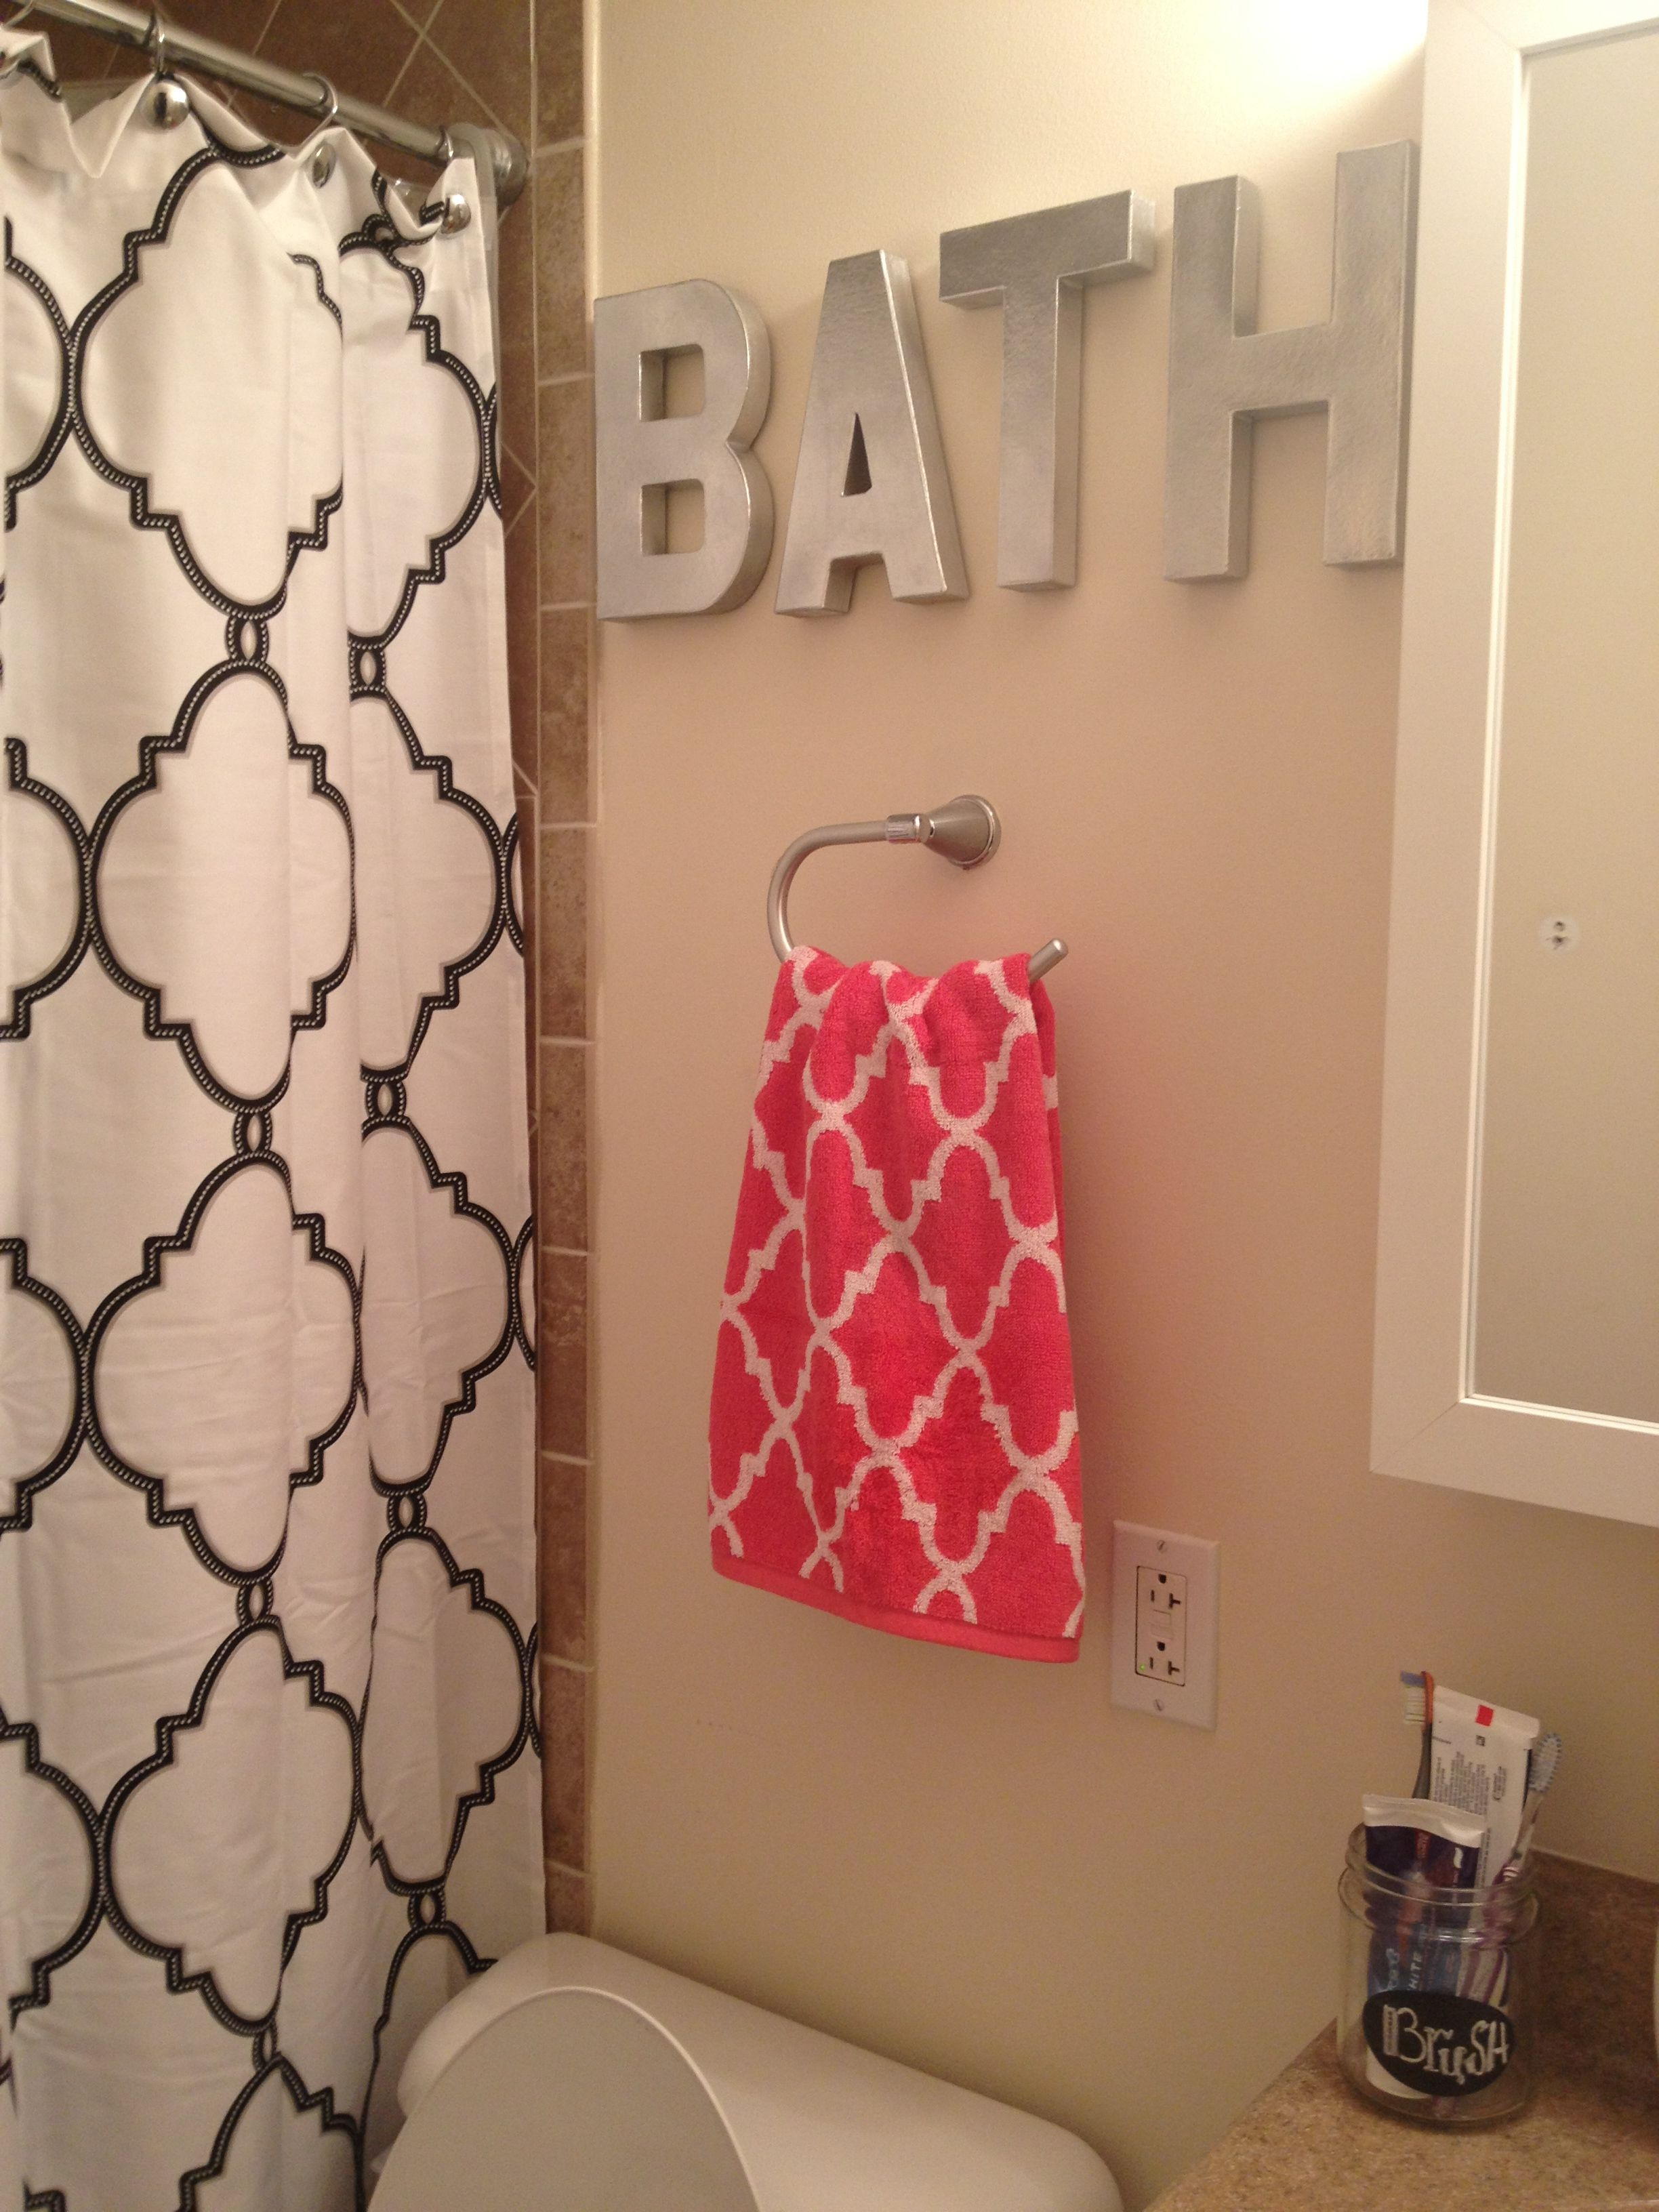 Spray Painted Hobby Lobby Letters Tj Maxx Shower Curtain And Towel Bathroom Kids